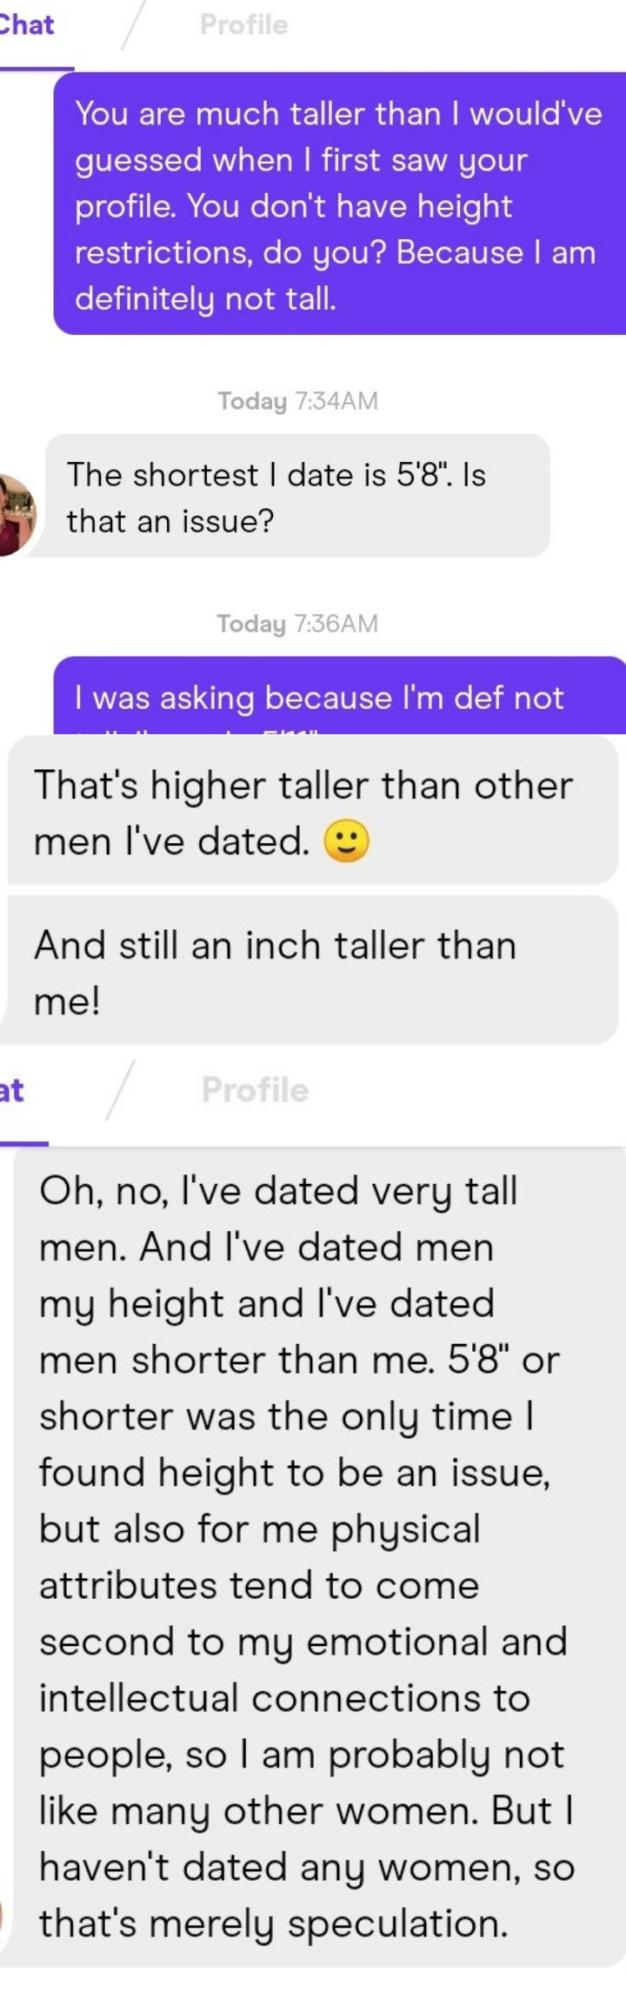 Girls, what do I say every time women keep bringing up my height or asking me how tall I am online?